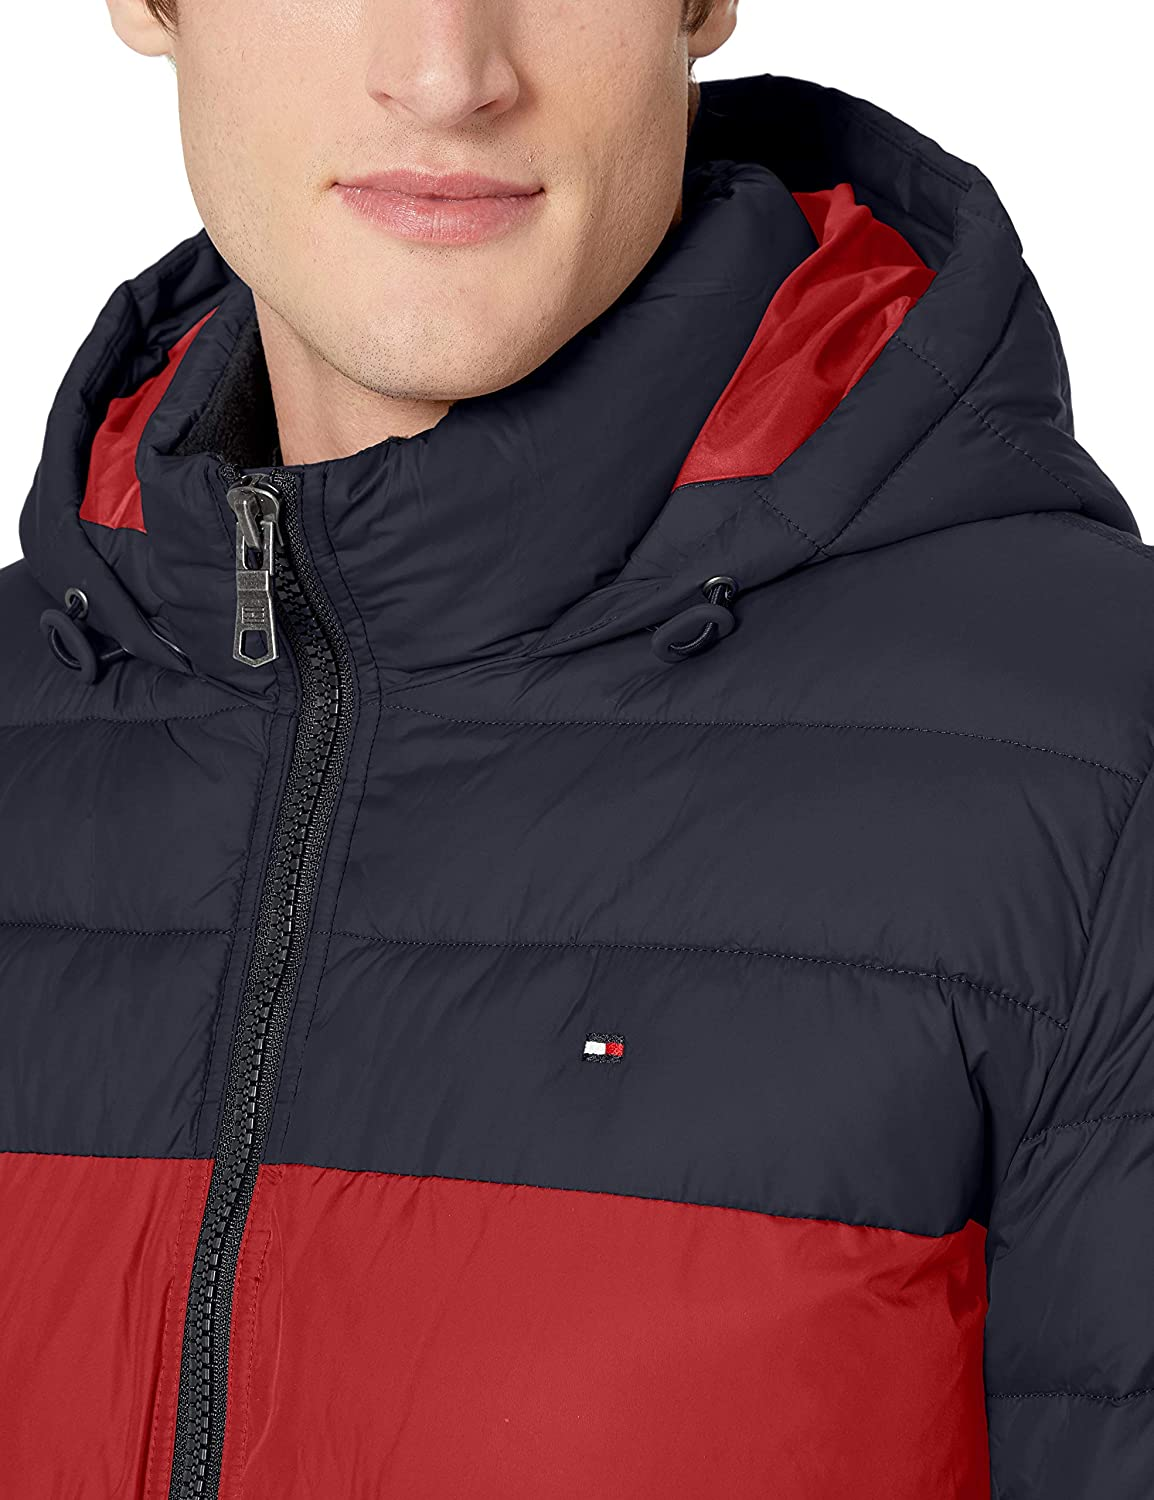 Tommy Hilfiger mens Classic Hooded Puffer Jacket Down Alternative Coat